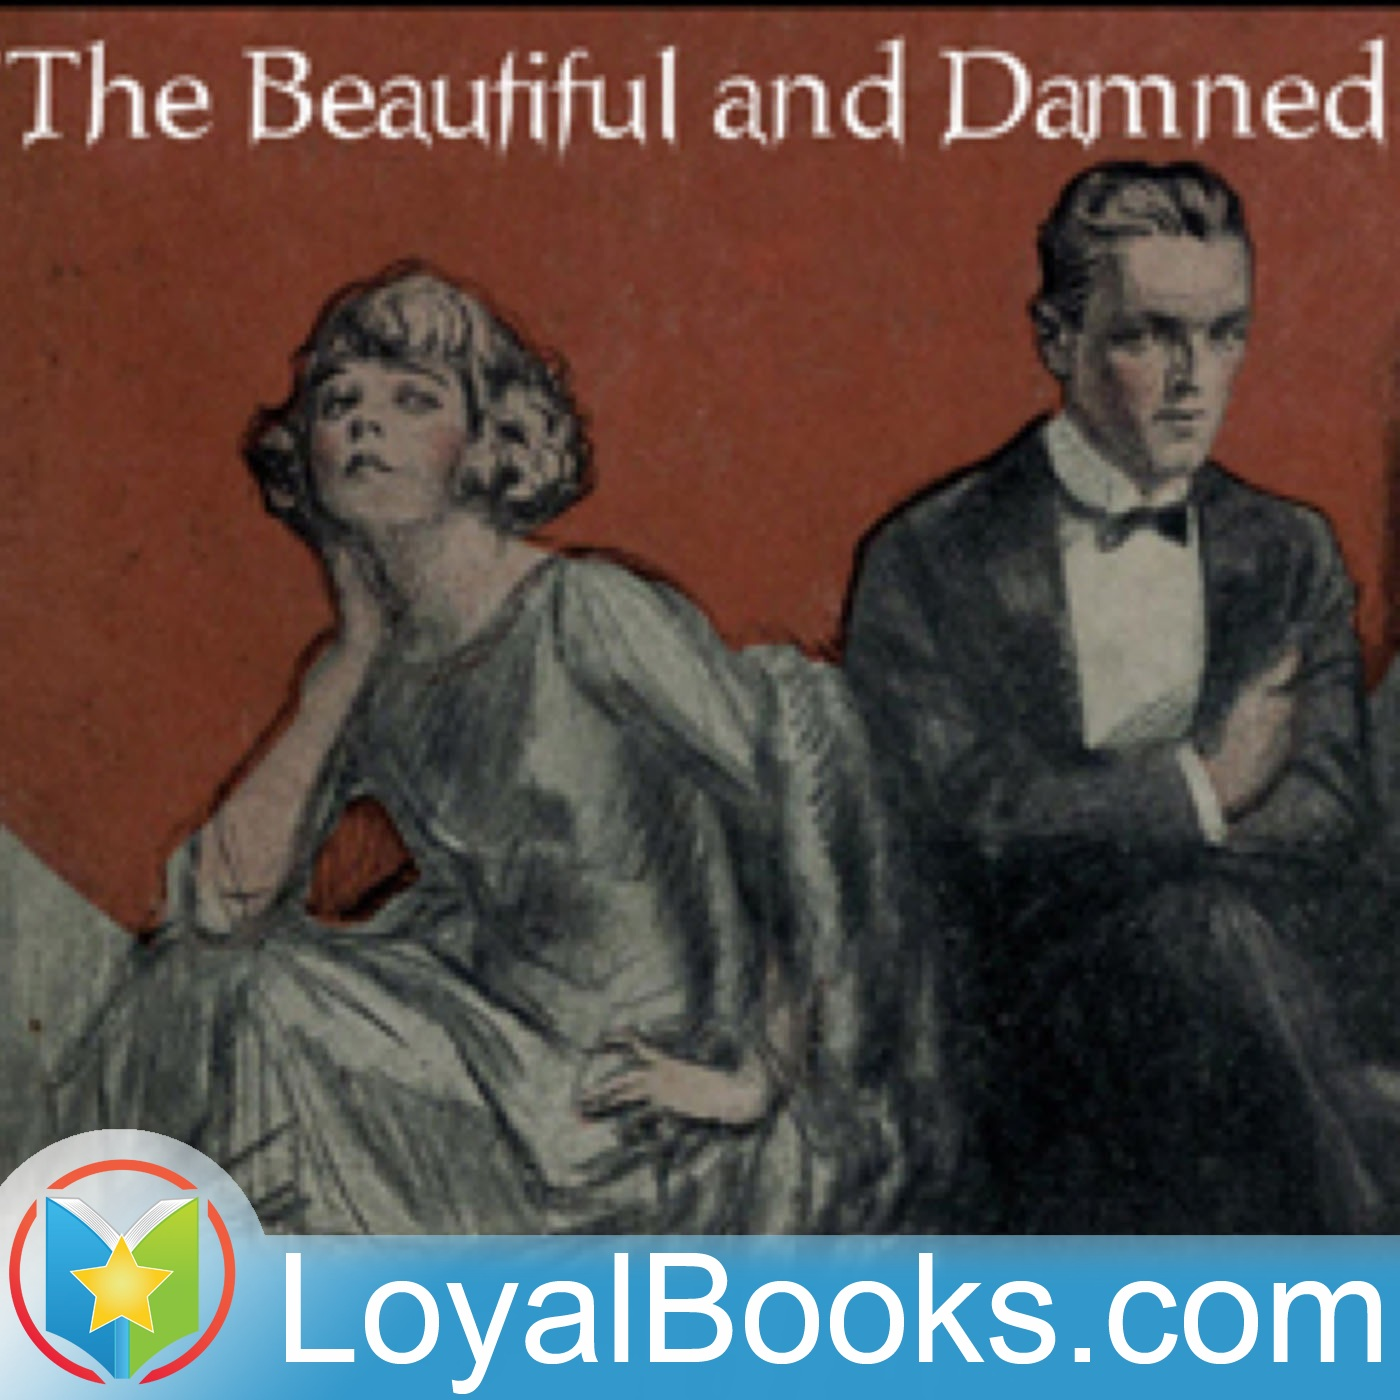 <![CDATA[The Beautiful and Damned by F. Scott Fitzgerald]]>